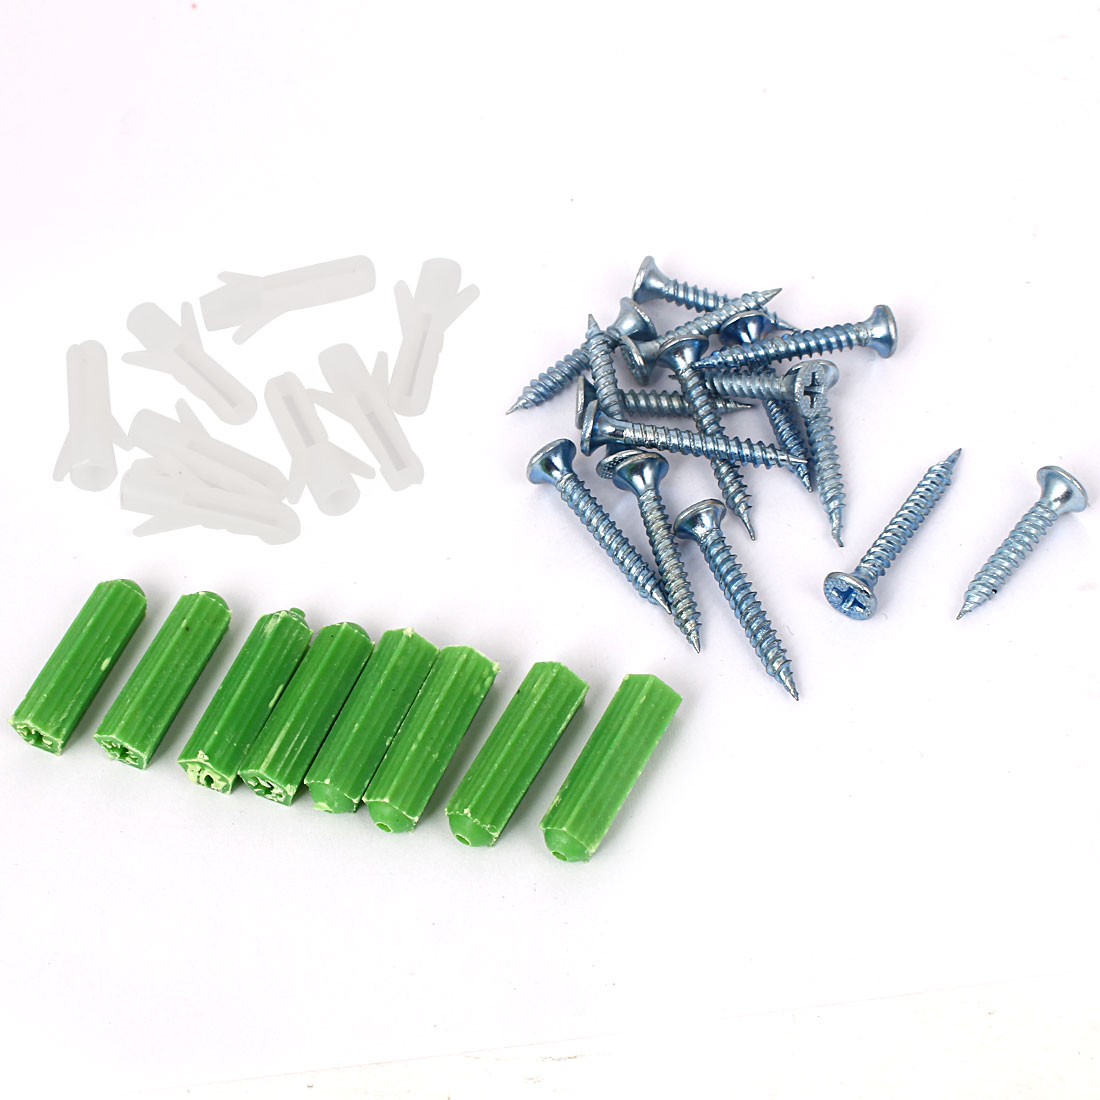 Wooden Furniture Tools Blue Metal Cement Nails Plastic Anchors 32 in 1